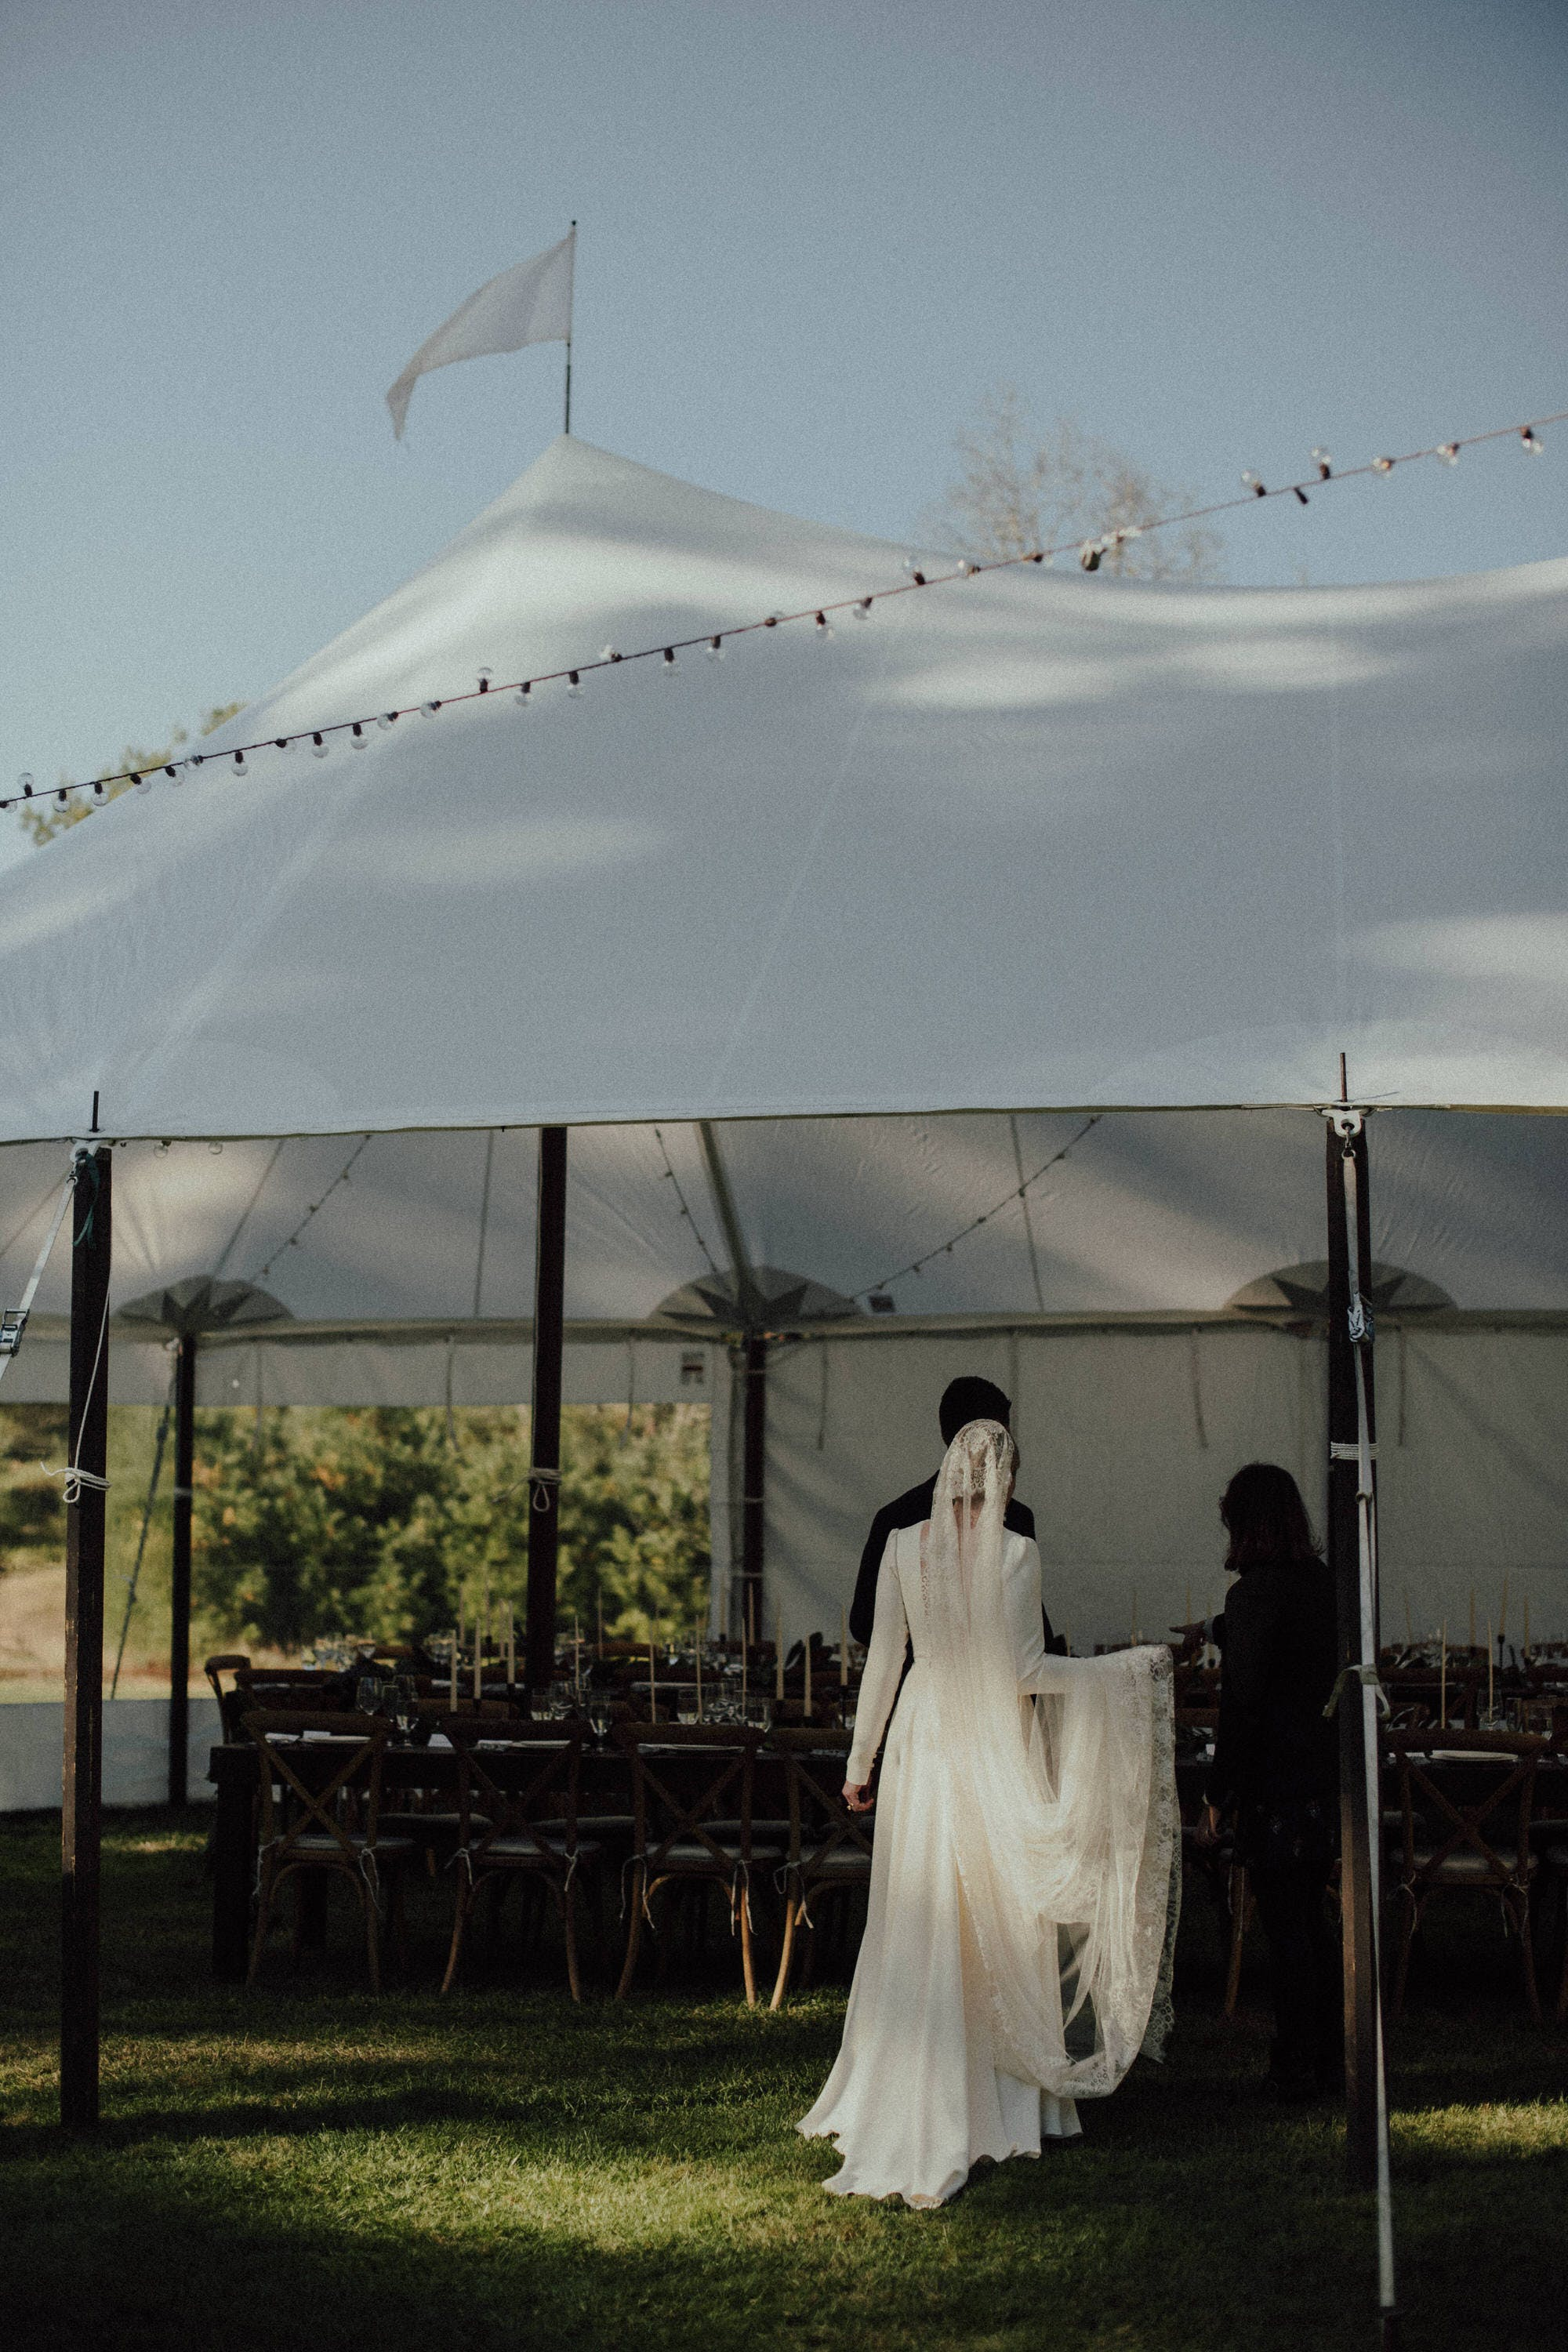 tent with flag wedding reception space